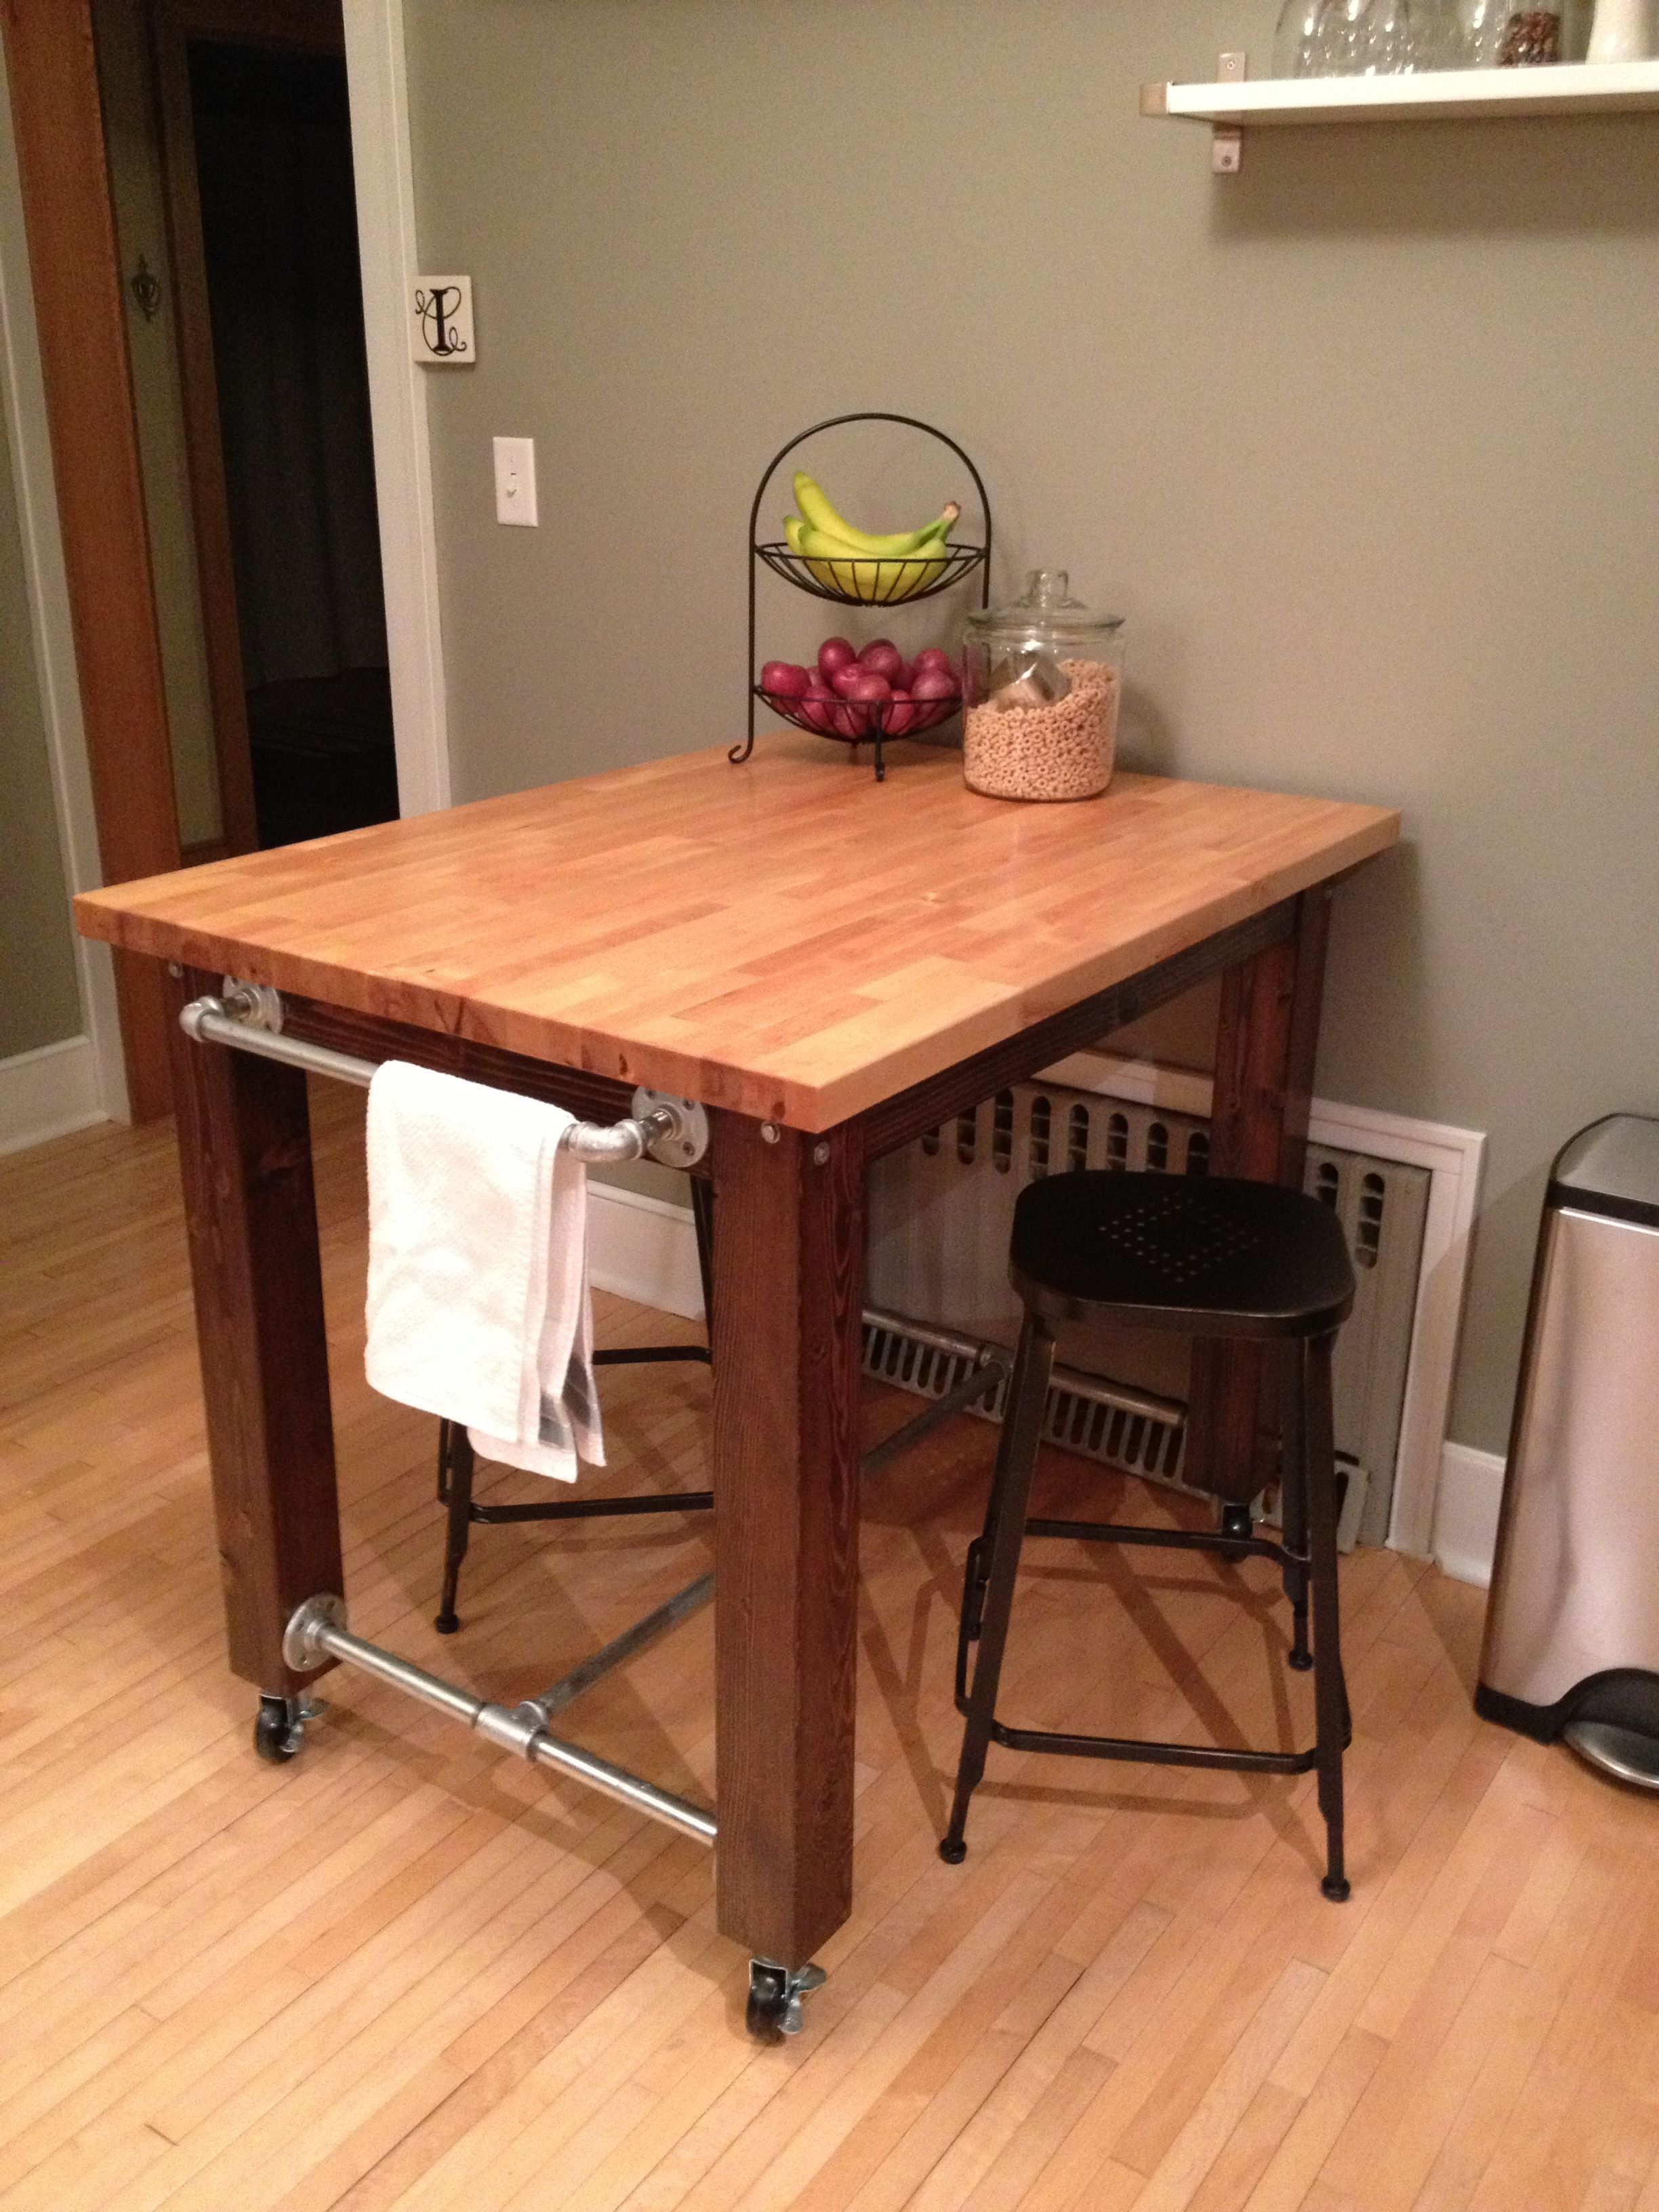 Kitchen Island We Built From Scratch 4x4s A Little Stain Ikea Butcher Block Table Top And